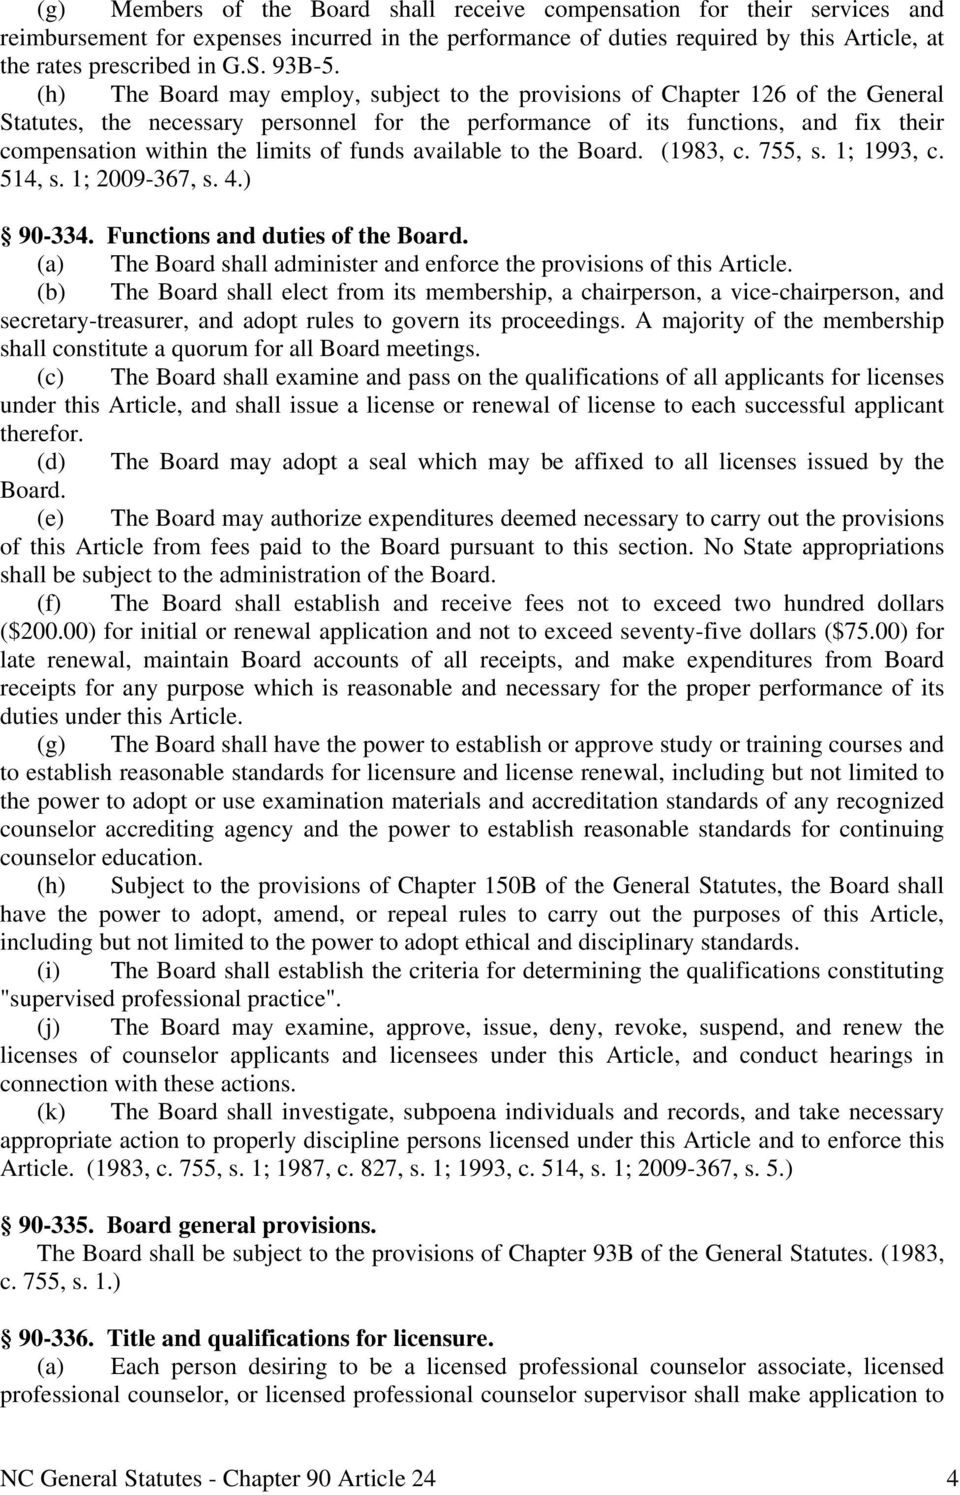 (h) The Board may employ, subject to the provisions of Chapter 126 of the General Statutes, the necessary personnel for the performance of its functions, and fix their compensation within the limits